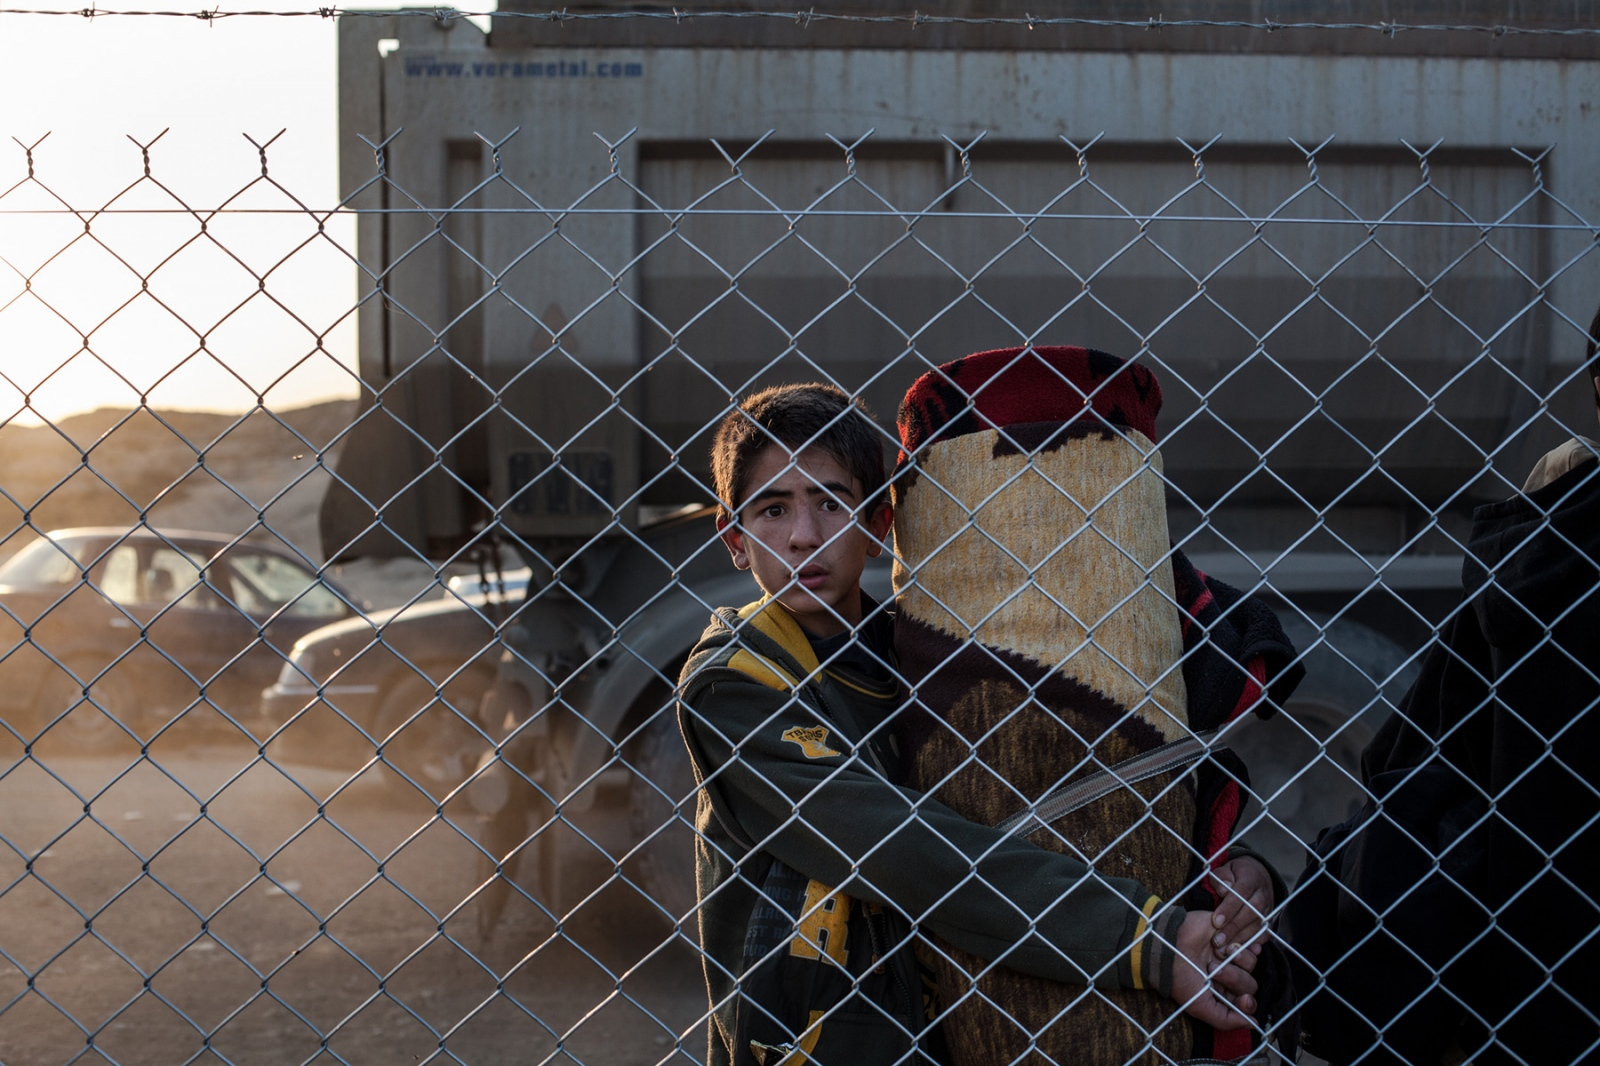 A boy, newly arrived at the Hassan Sham IDP camp, looks through the fence after having fled fighting in Mosul, Iraq. November 2016.